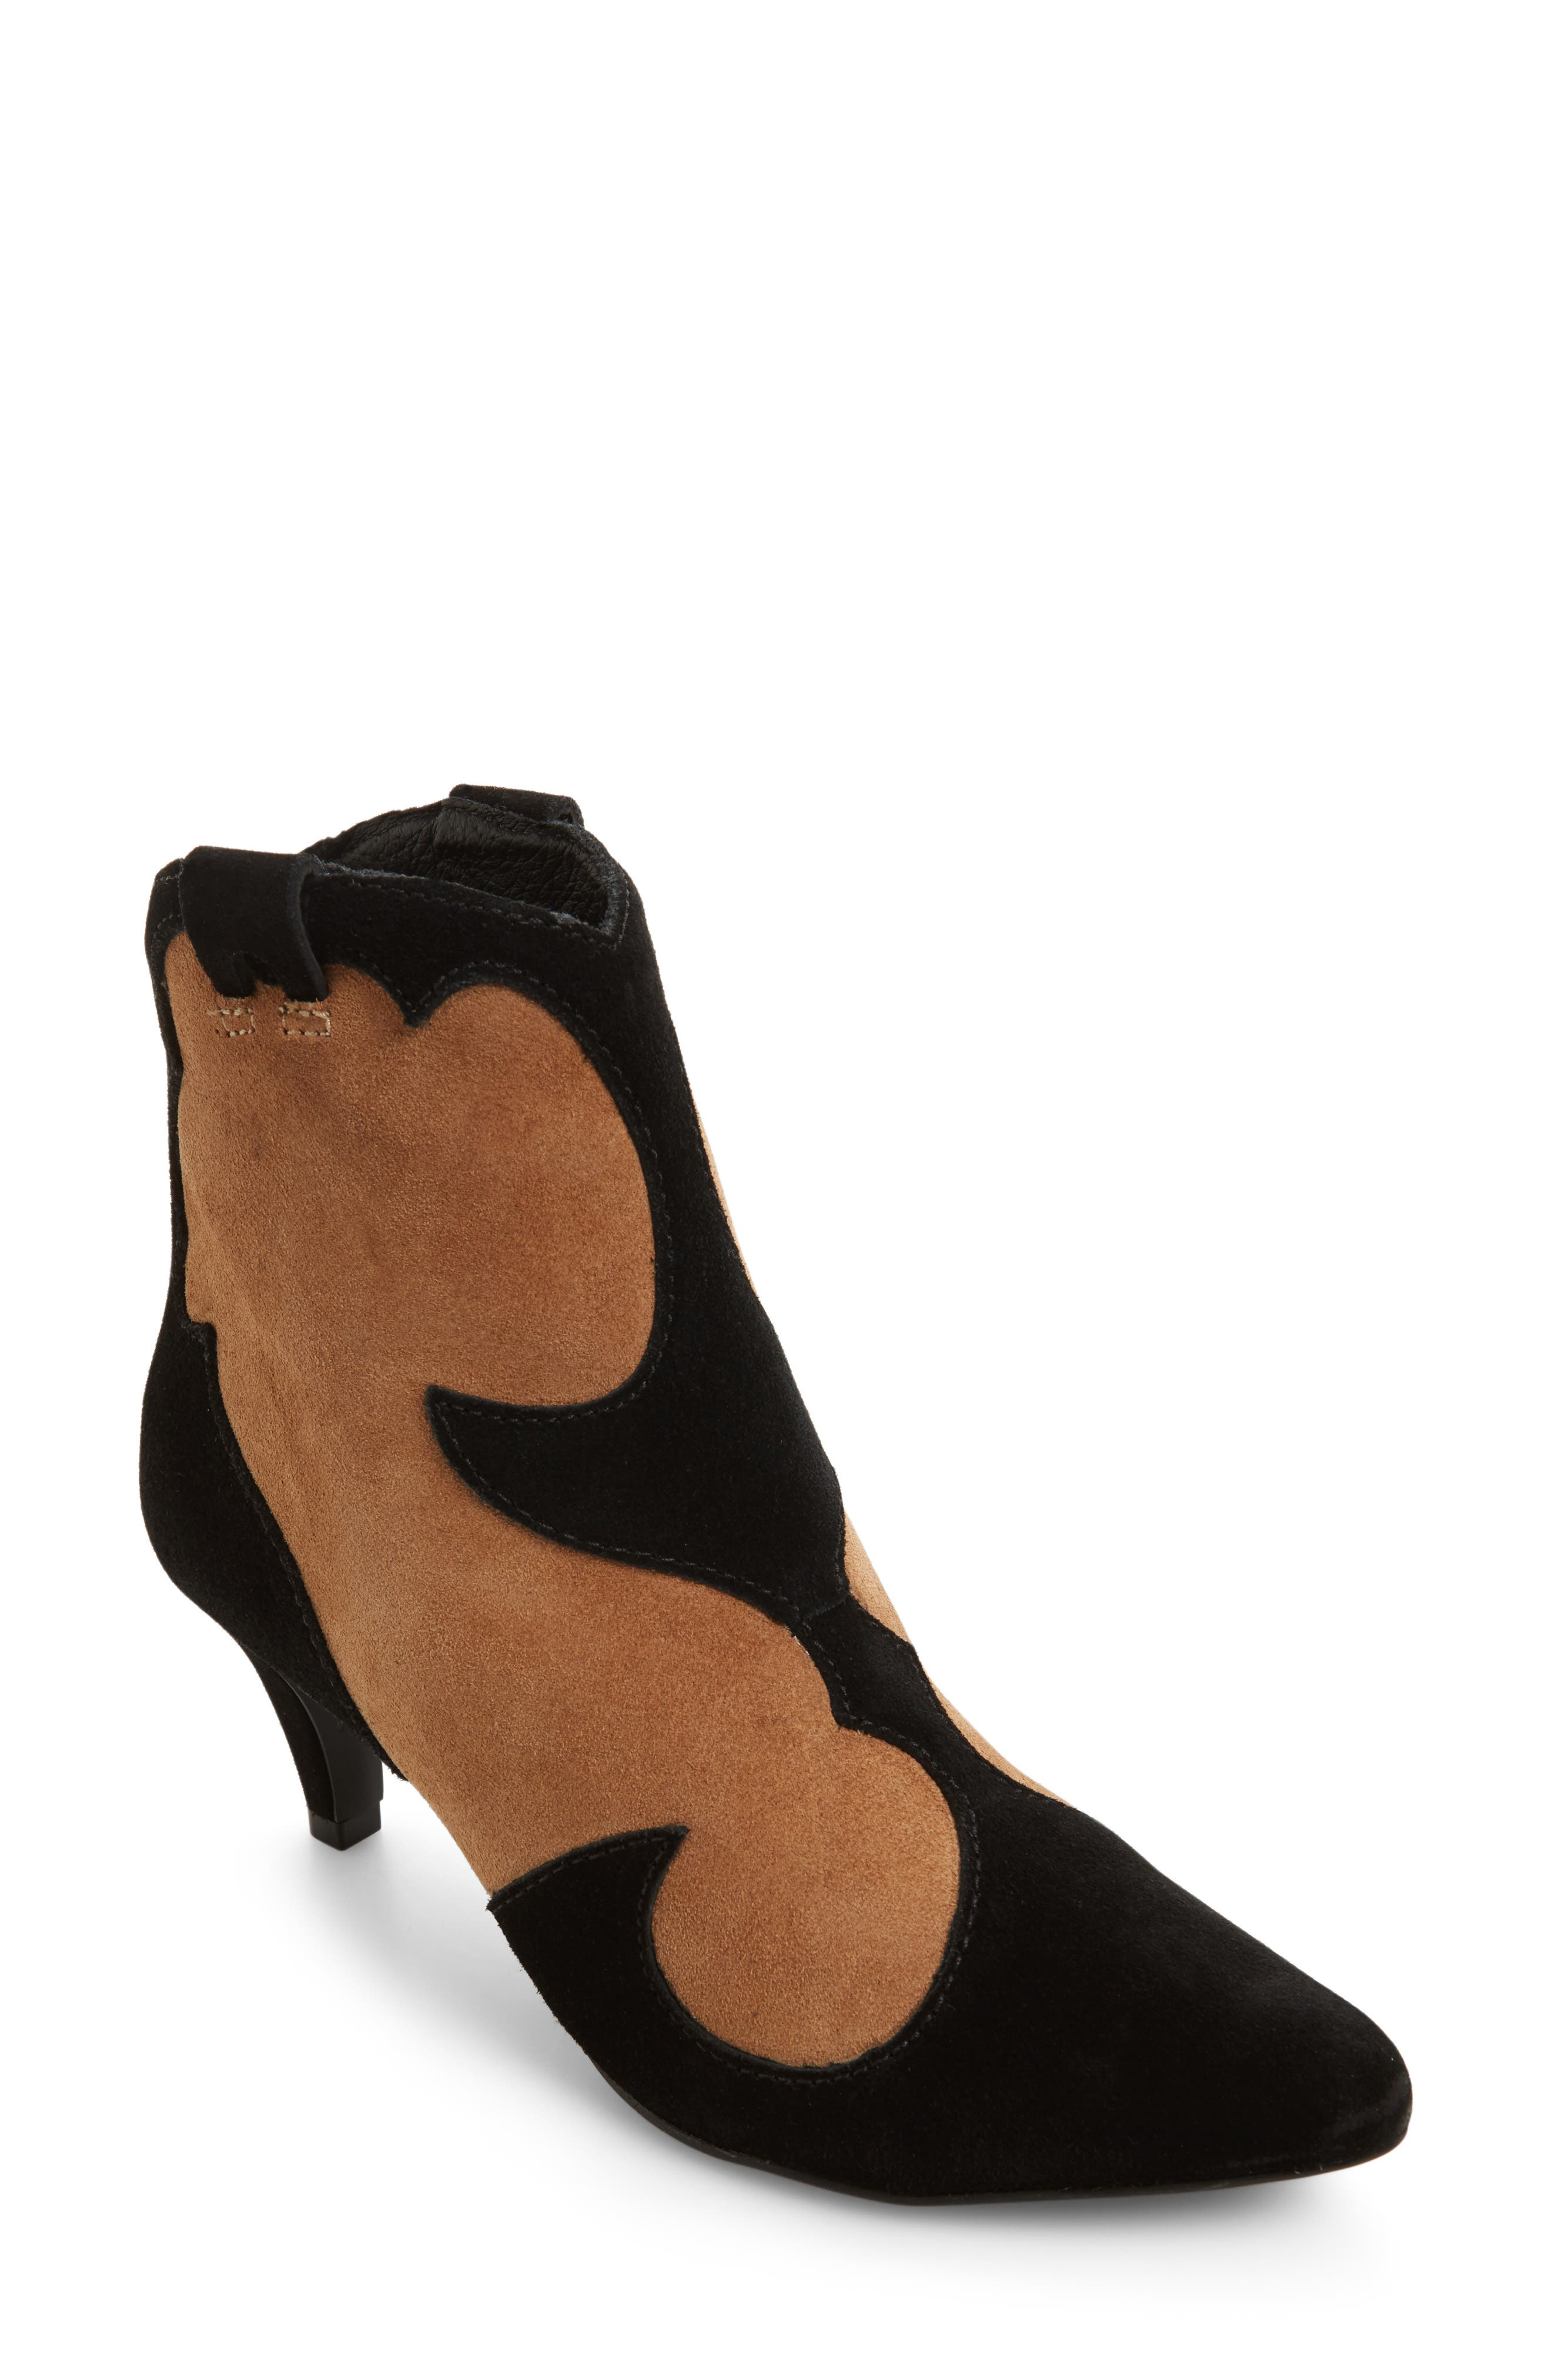 Majesty Two-Tone Bootie,                             Main thumbnail 1, color,                             001